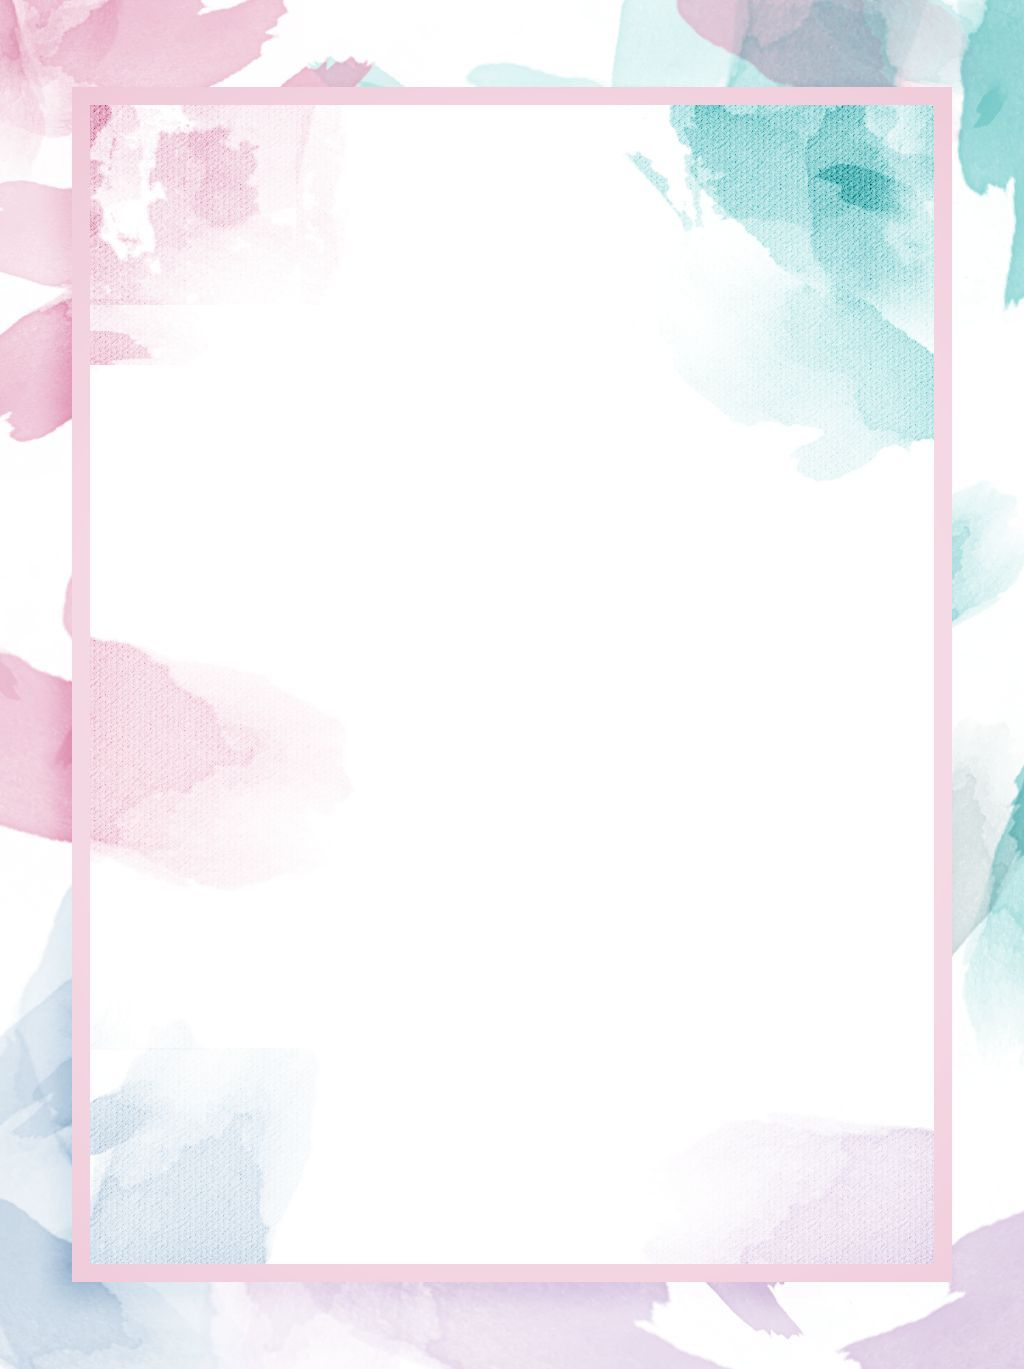 Full Irregular Watercolor Splash Ink Light Color Background